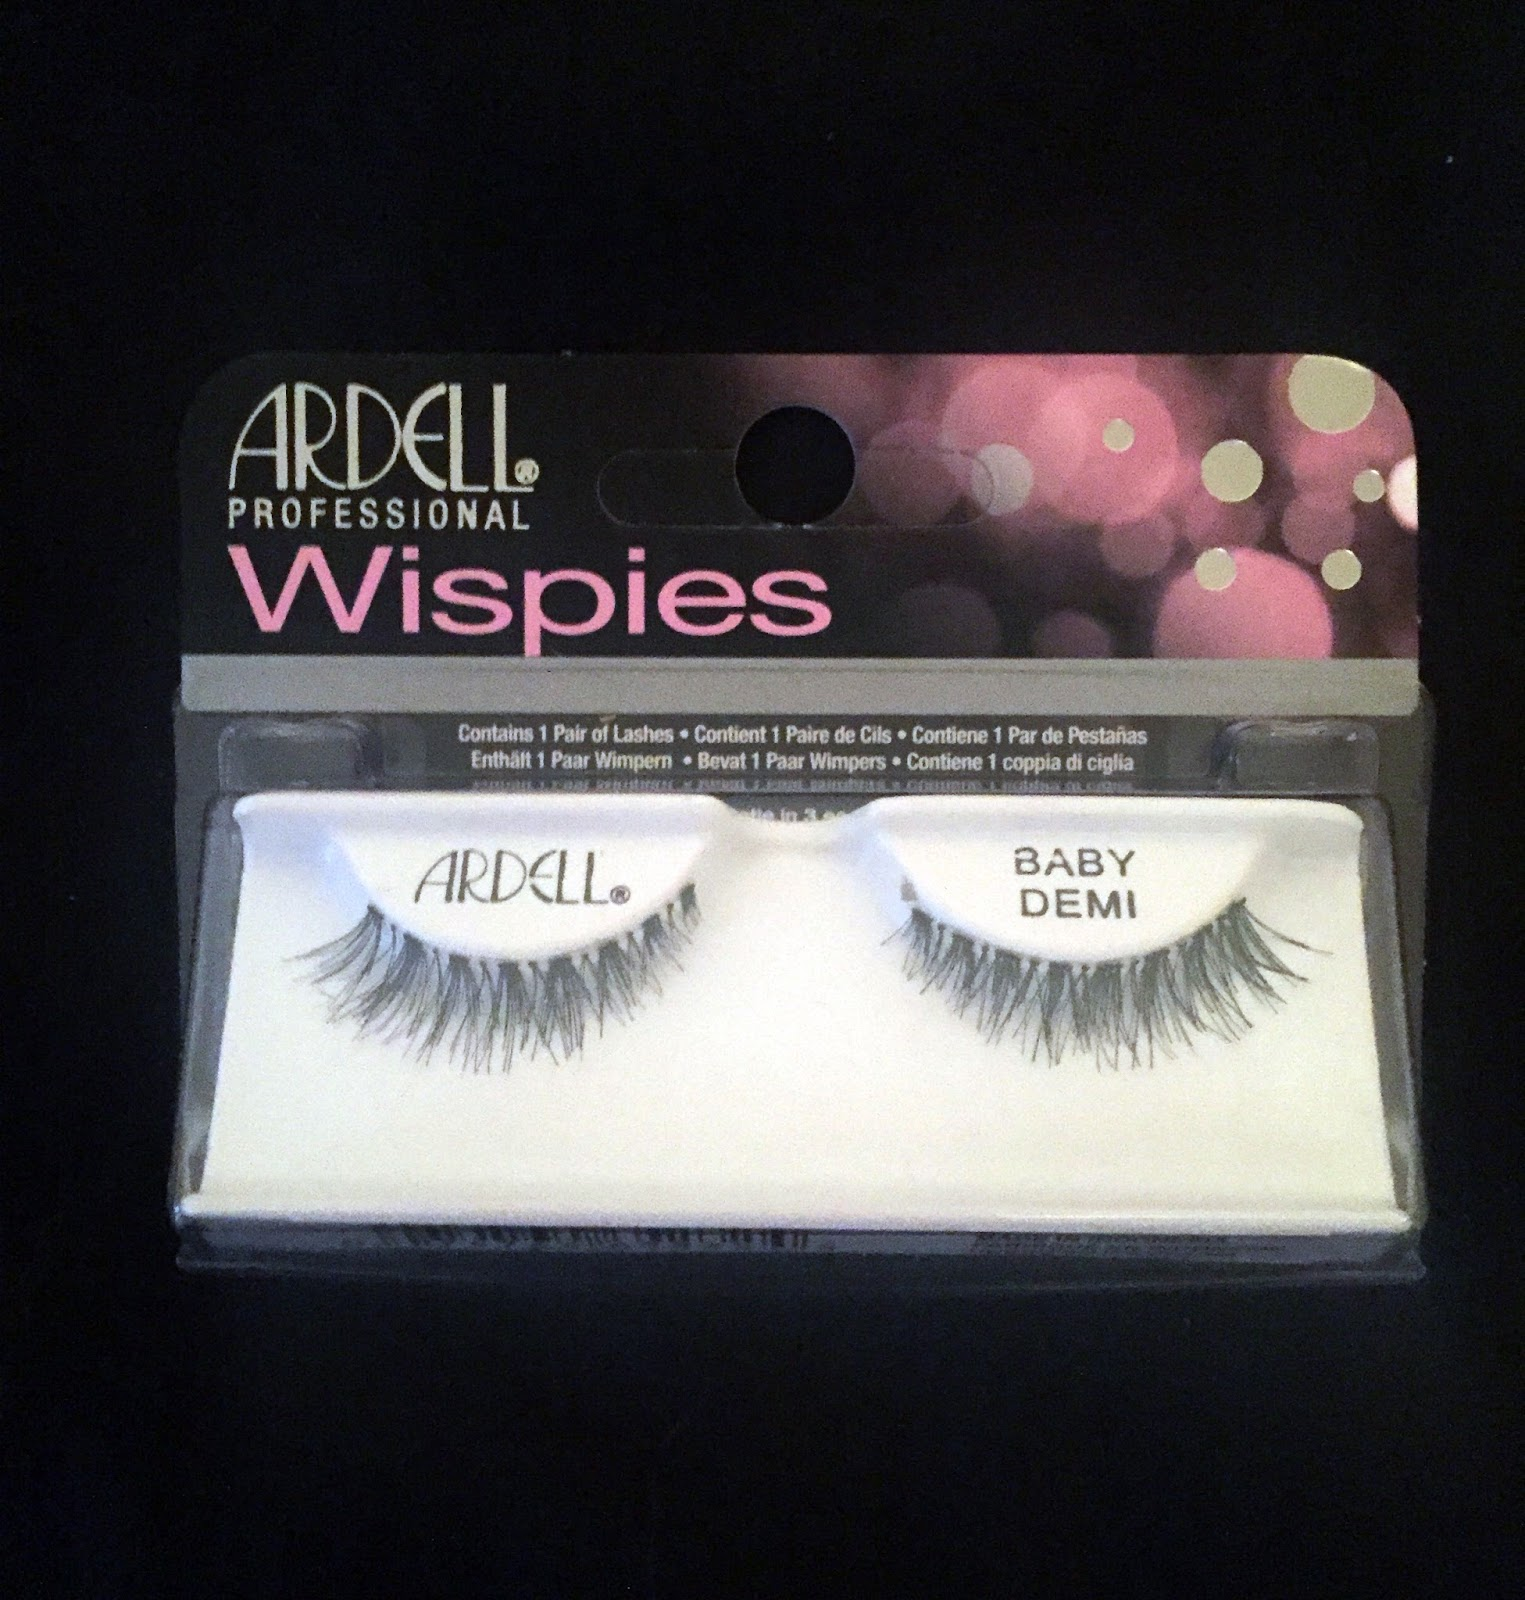 e6094dbbd2f Ardell Professional Lashes Baby Demi Wispies False Lashes photo by me.